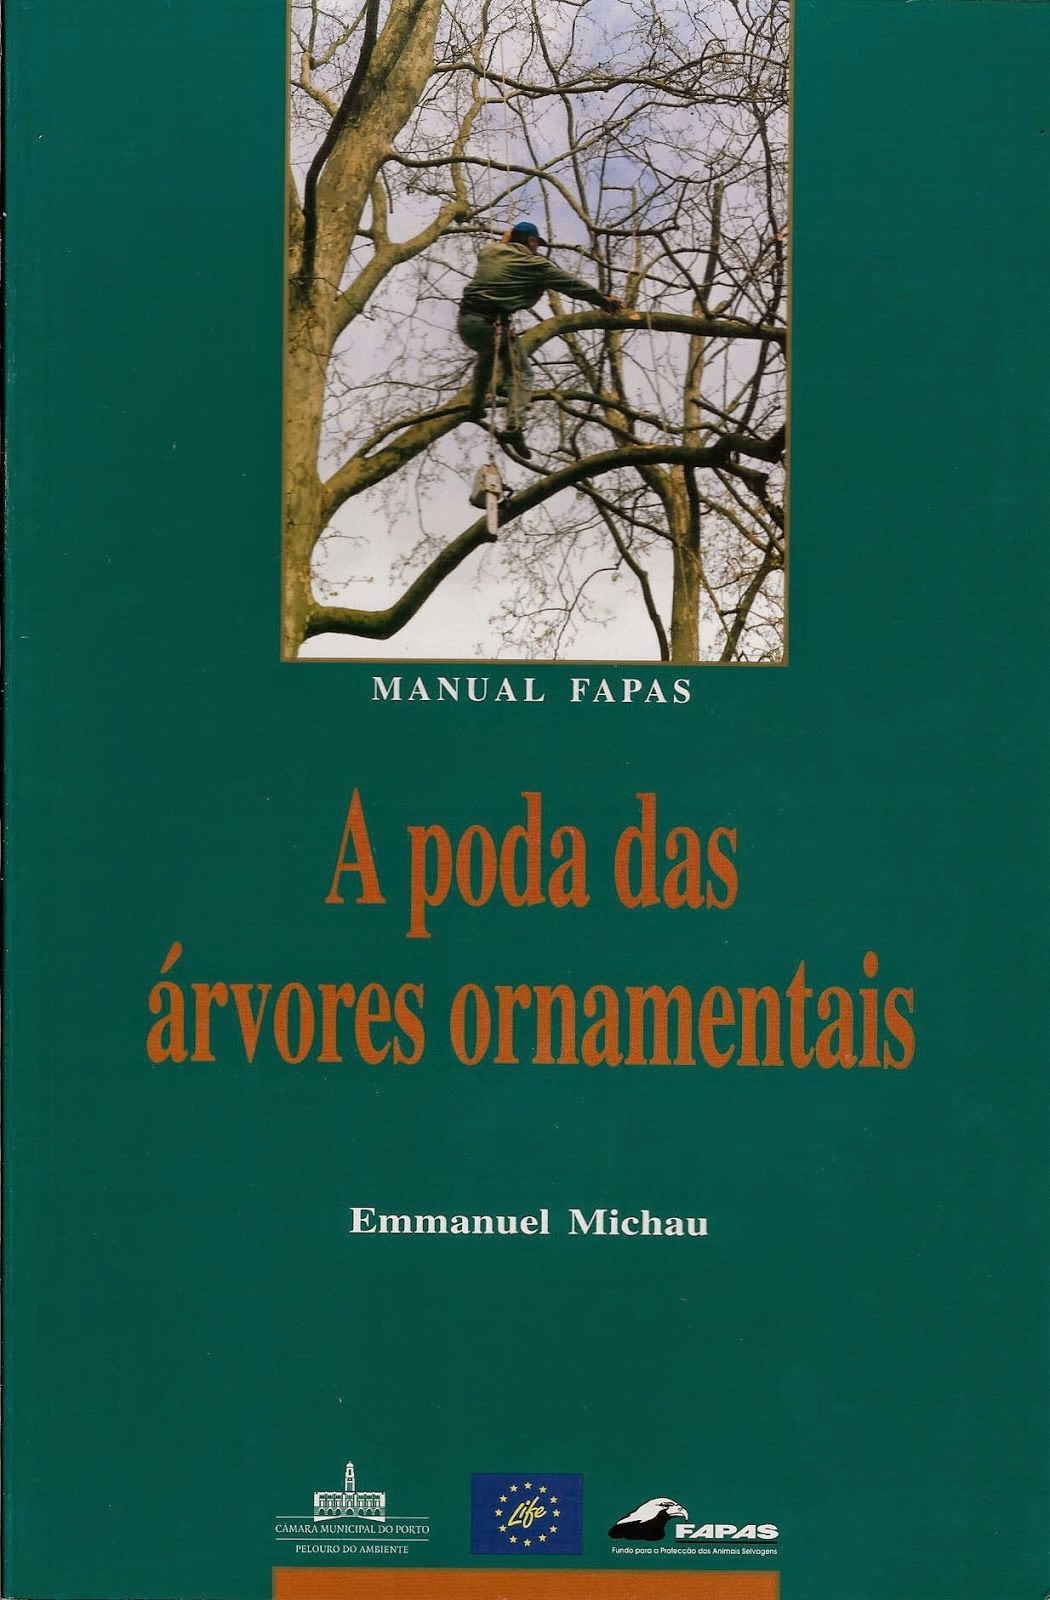 A Poda das Árvores Ornamentais – Manual FAPAS